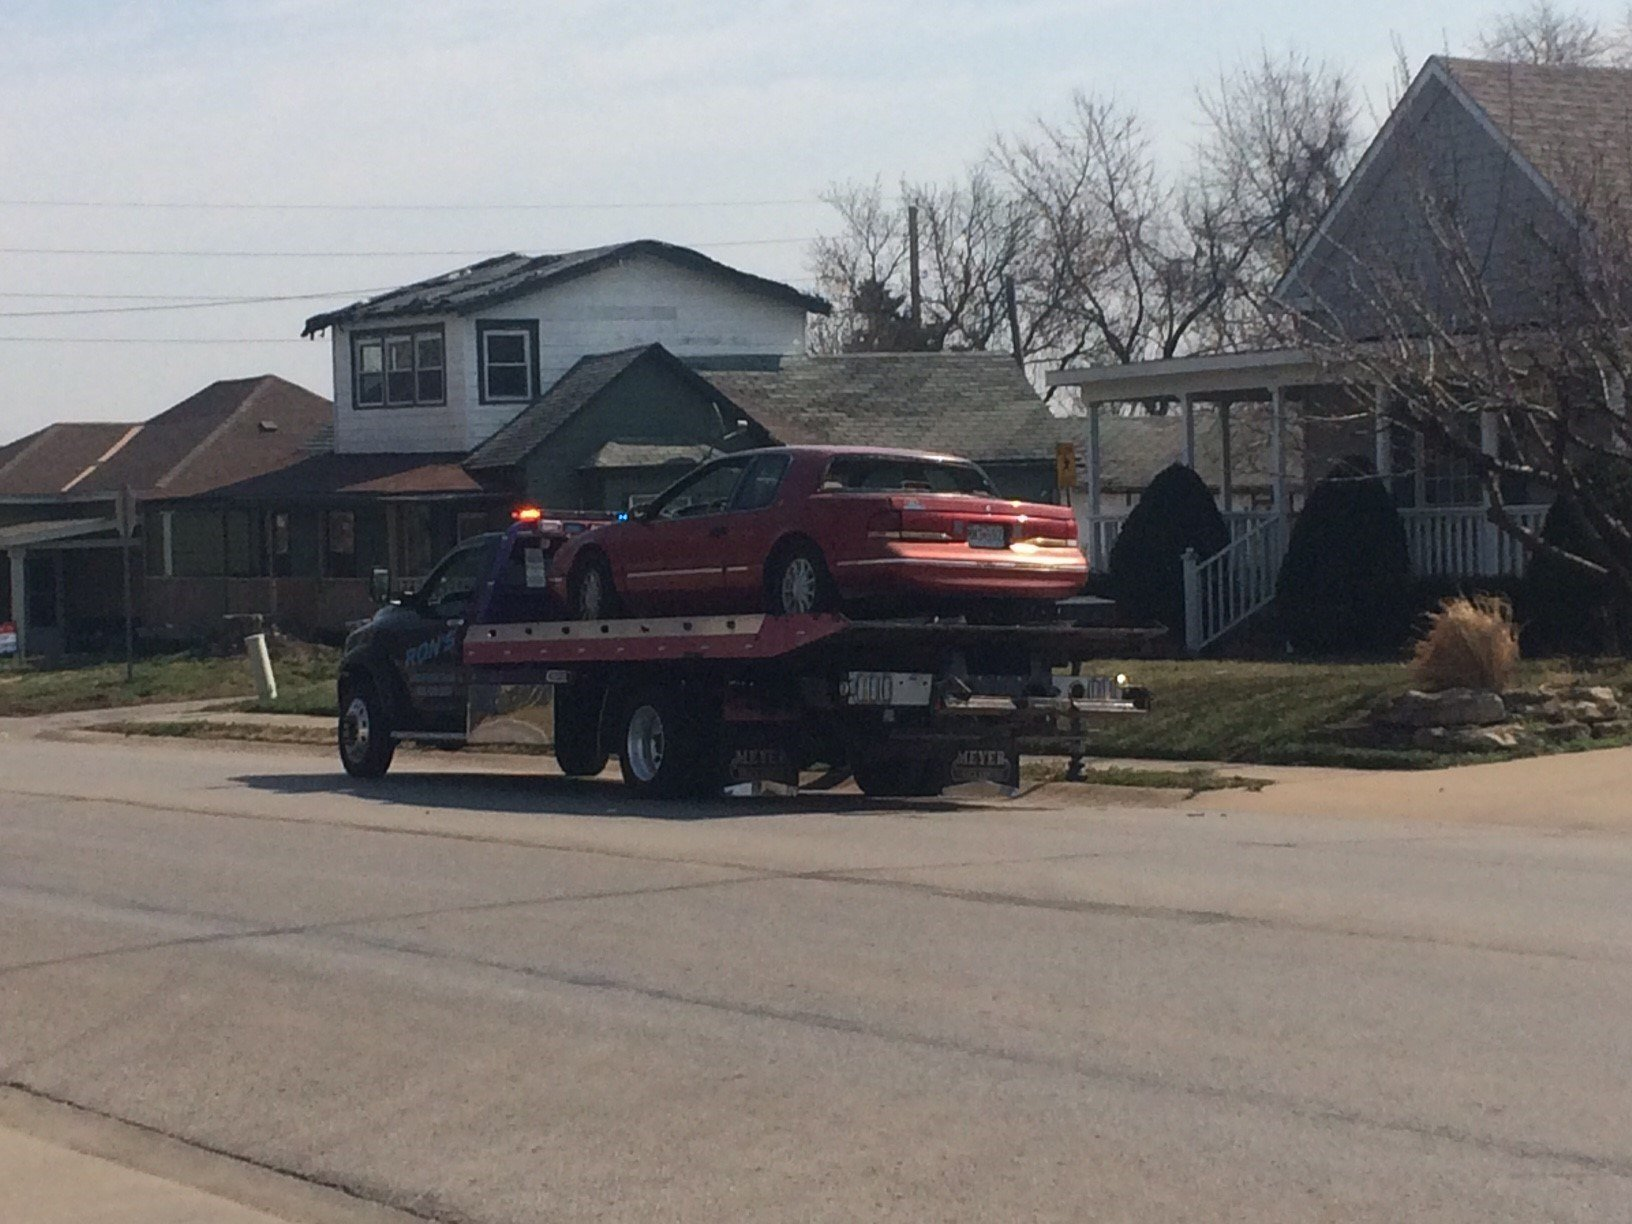 The Jackson County Sheriff's Office arrested a man for looting a home damaged by the tornado. (Emily Sinovic/KCTV5 News)